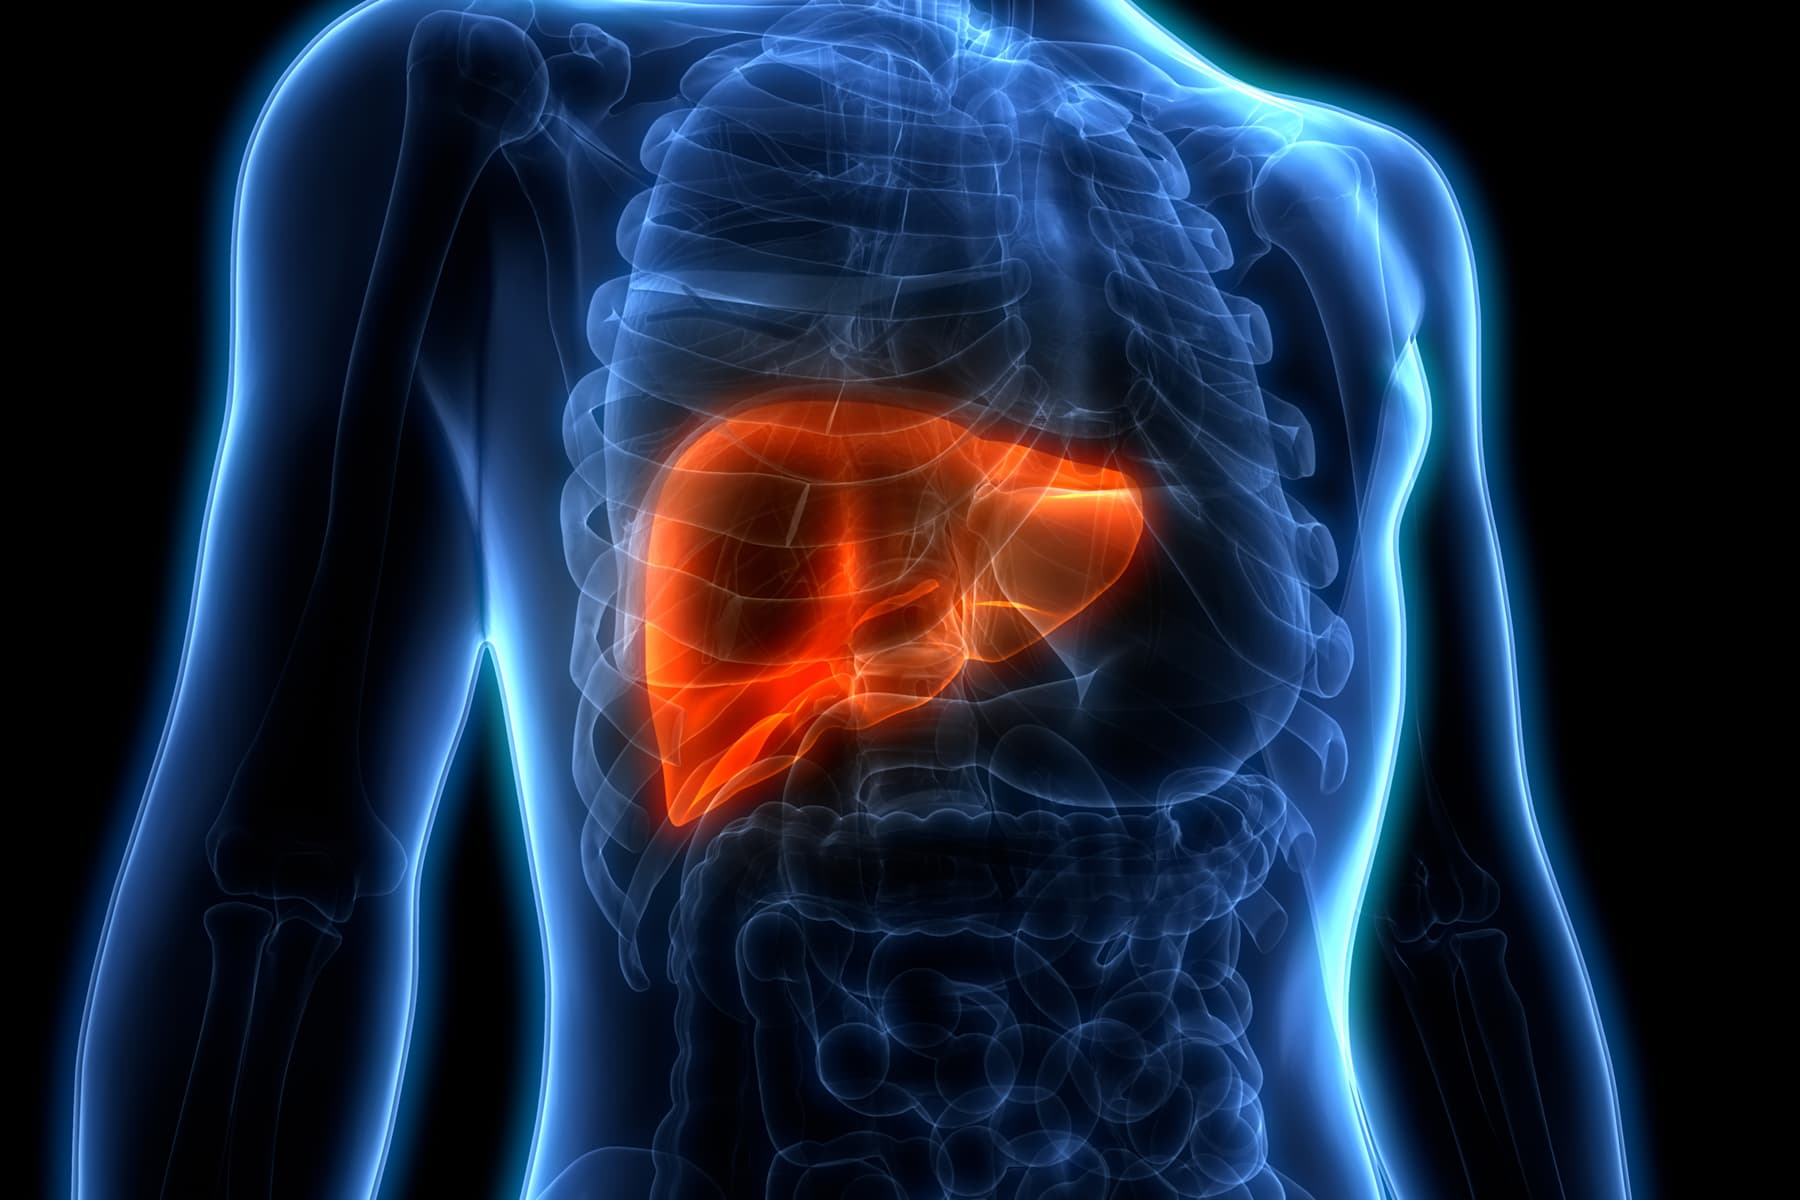 Chronic Liver Disease and Coronavirus: The Link Between Liver Disease and  COVID-19